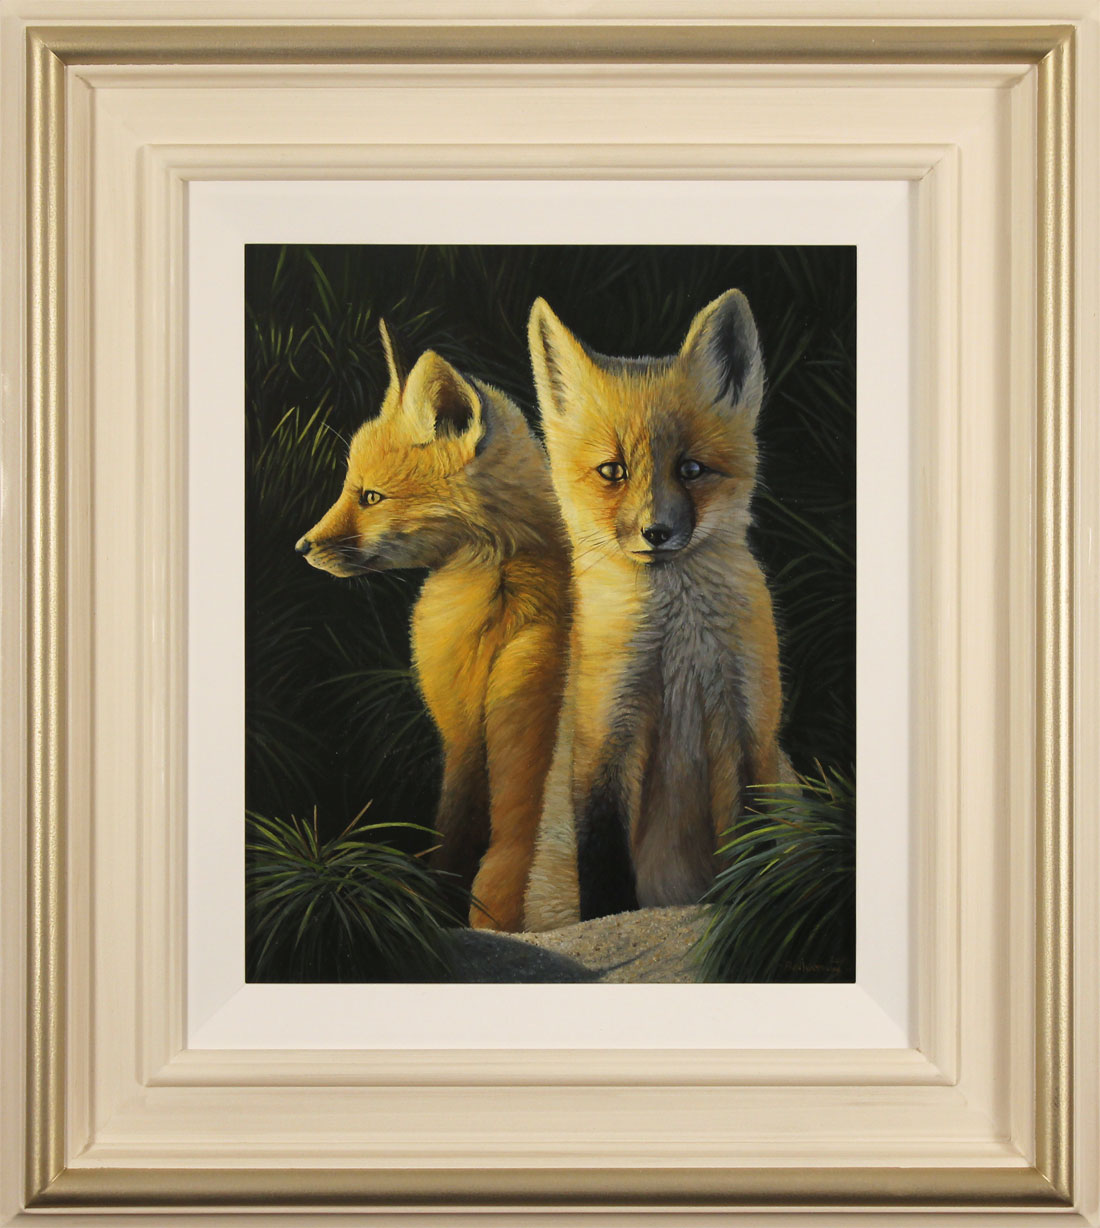 Ben Waddams, Original oil painting on panel, A Curious Pair. Click to enlarge